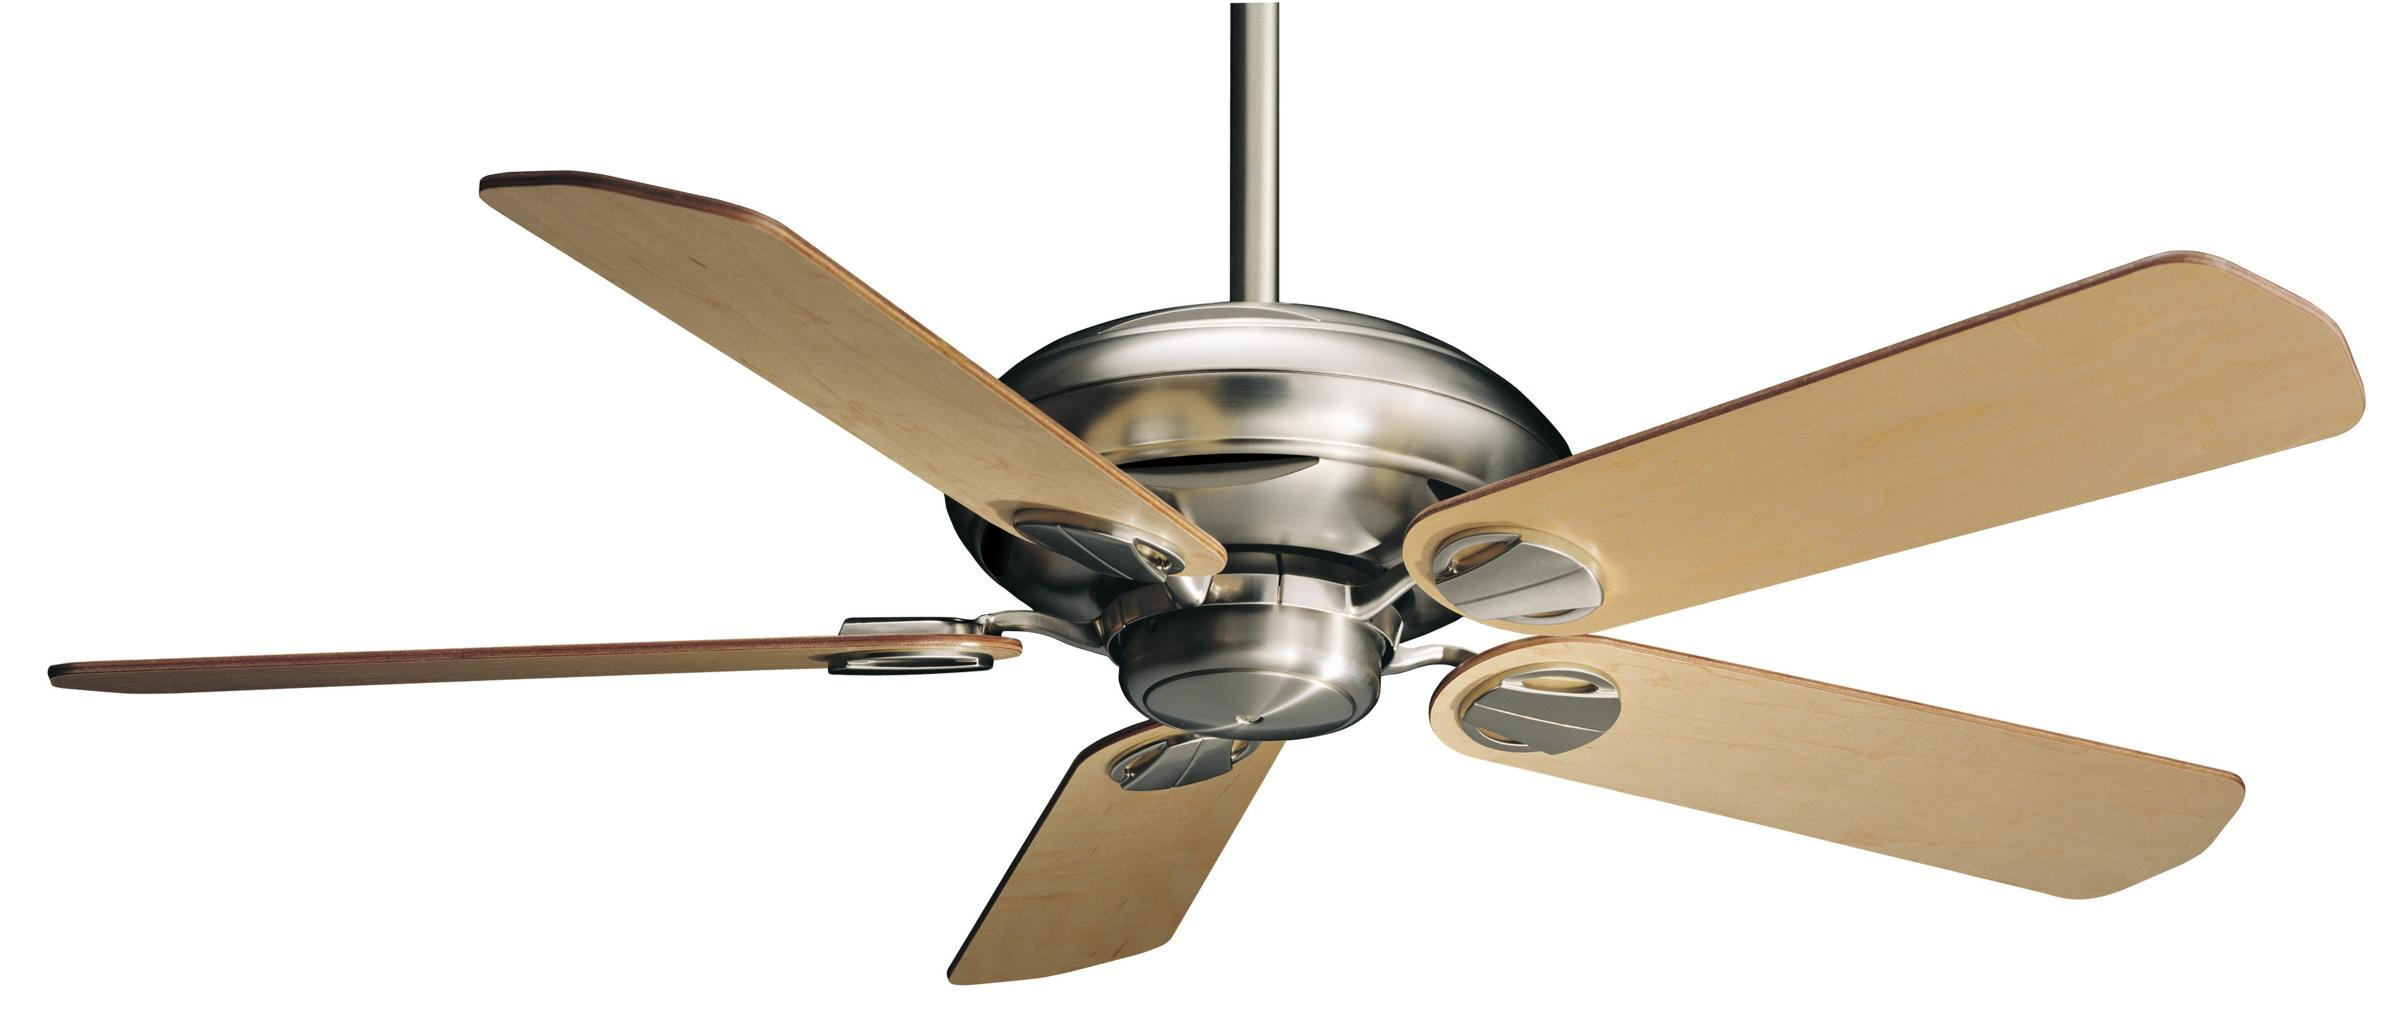 awesome Metropolitan casablanca ceiling fans CA 64799 in Brushed Nickel and five wooden blade slinger for ceiling furniture ideas